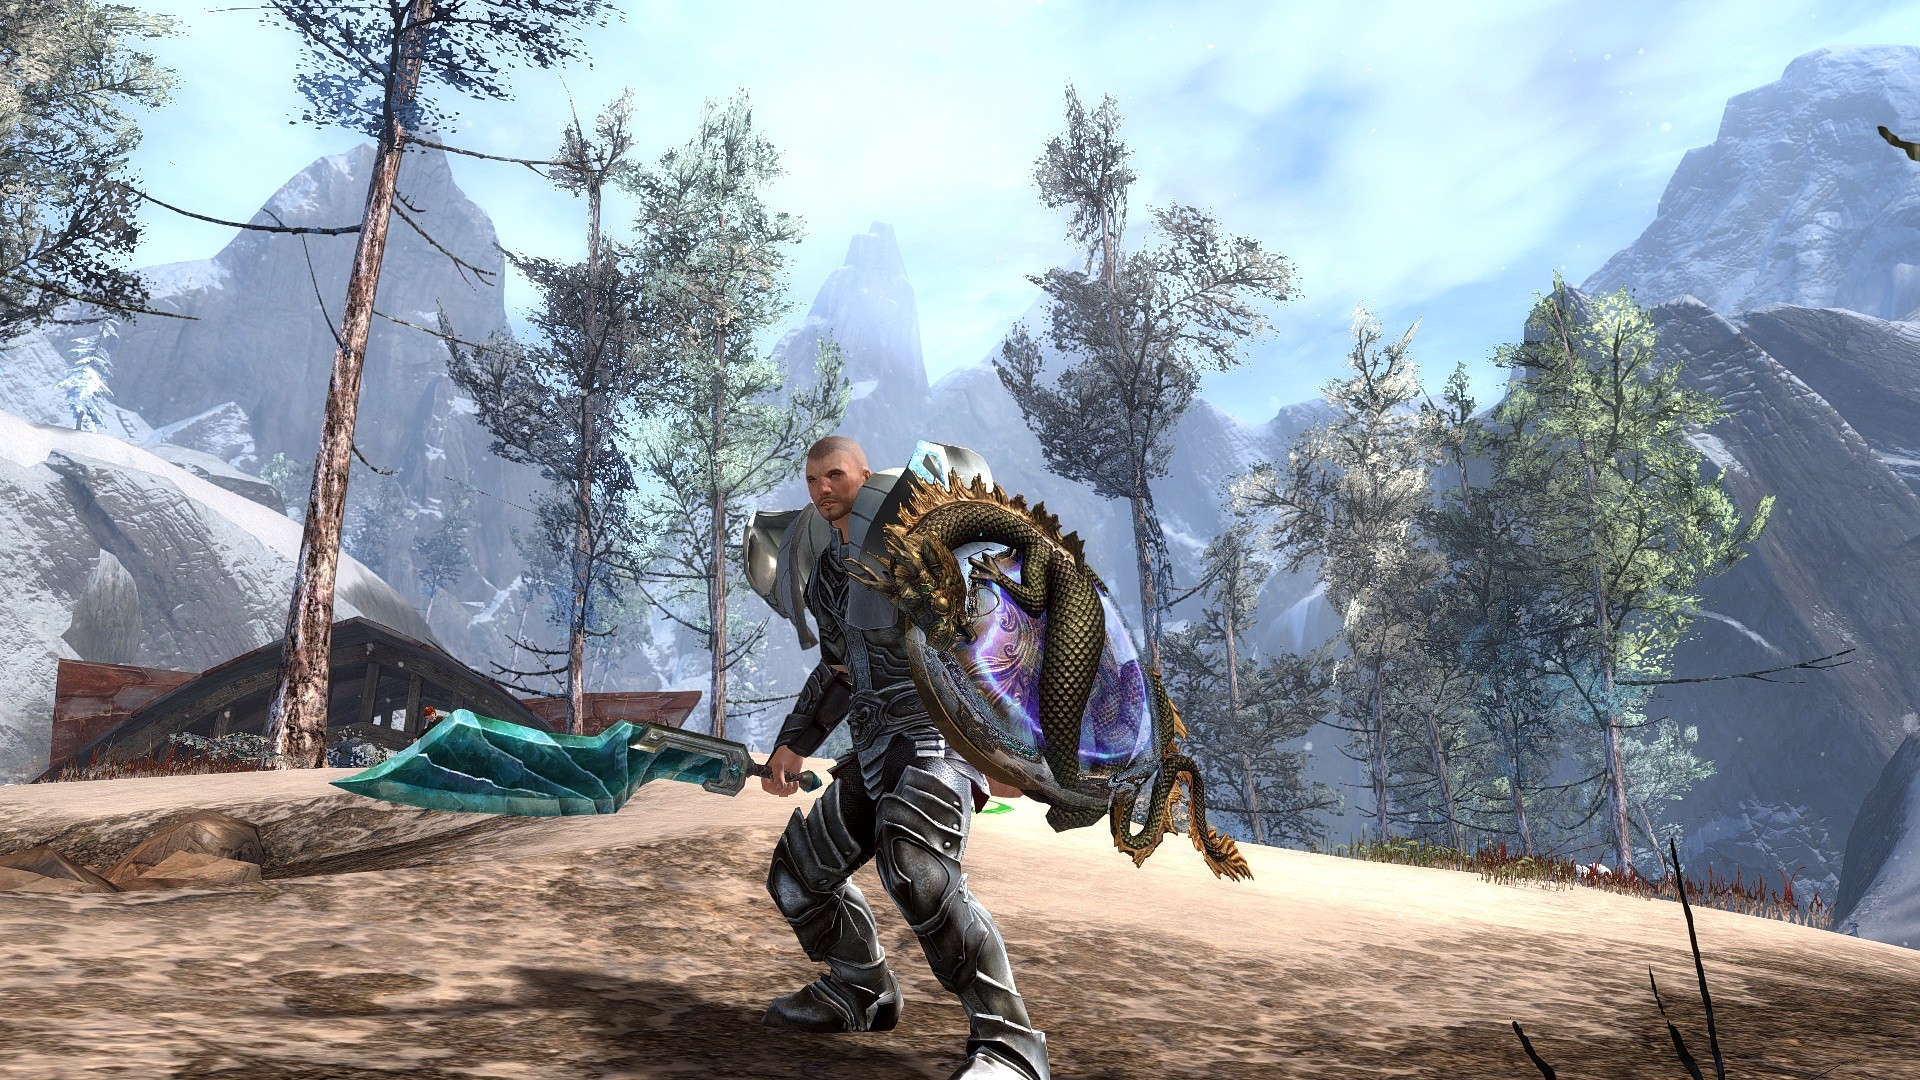 GW2 Guardian wielding Crystaline Sword and New Jade Shield!